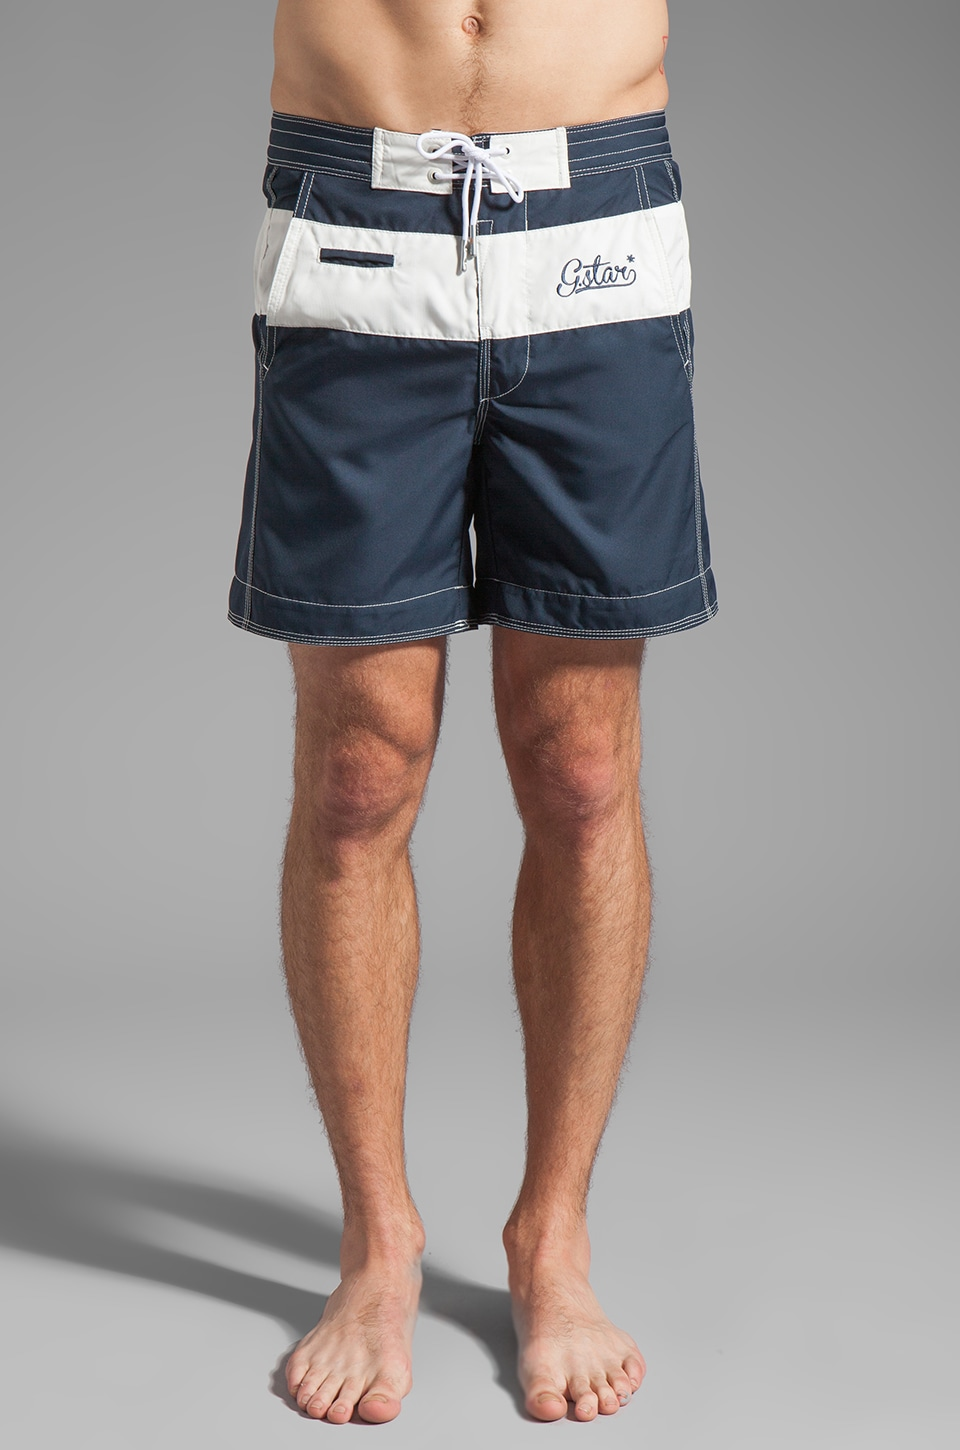 G-Star League Swim Short in Navy